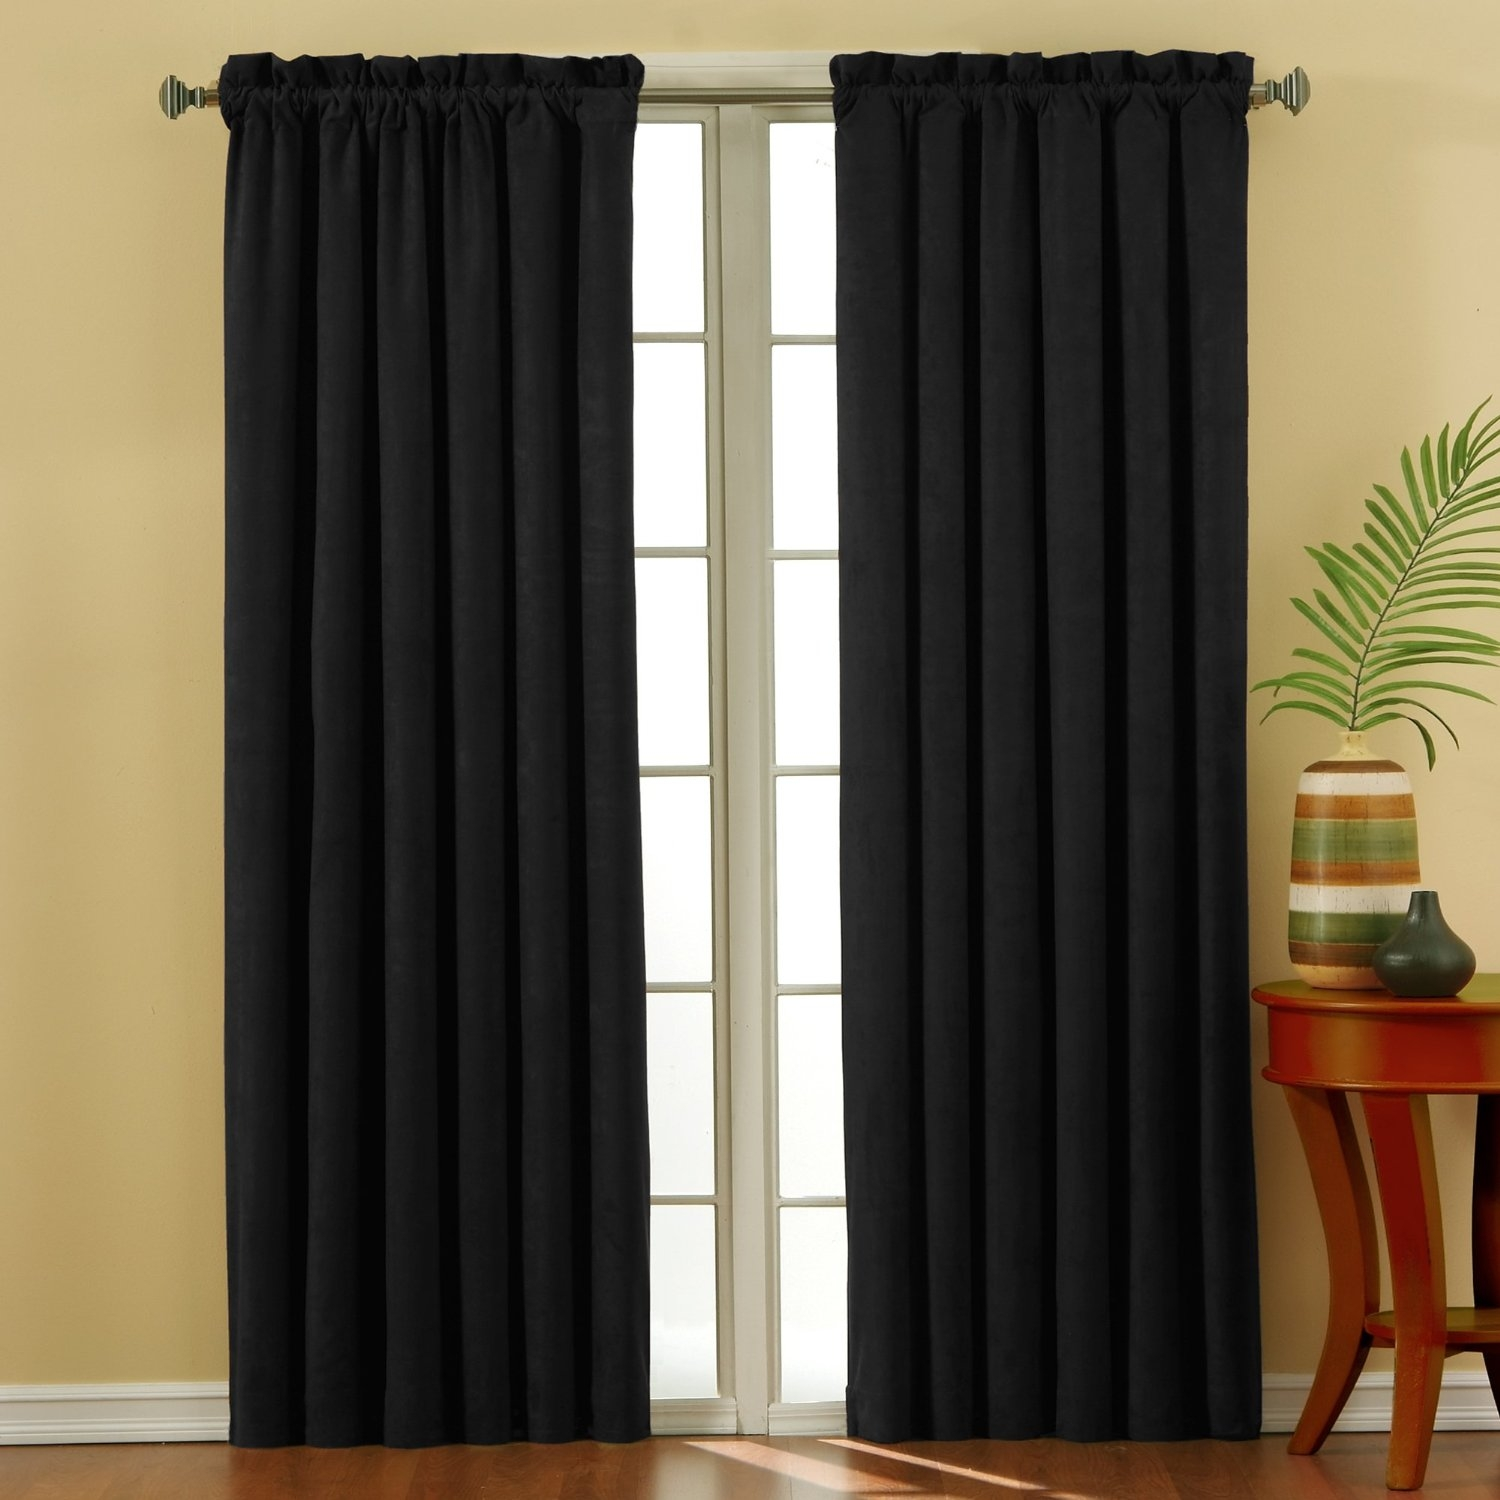 45 Inch Length Curtains Quick View Cafe Style Kitchen Curtains Throughout 63 Inches Long Curtains (Image 1 of 25)